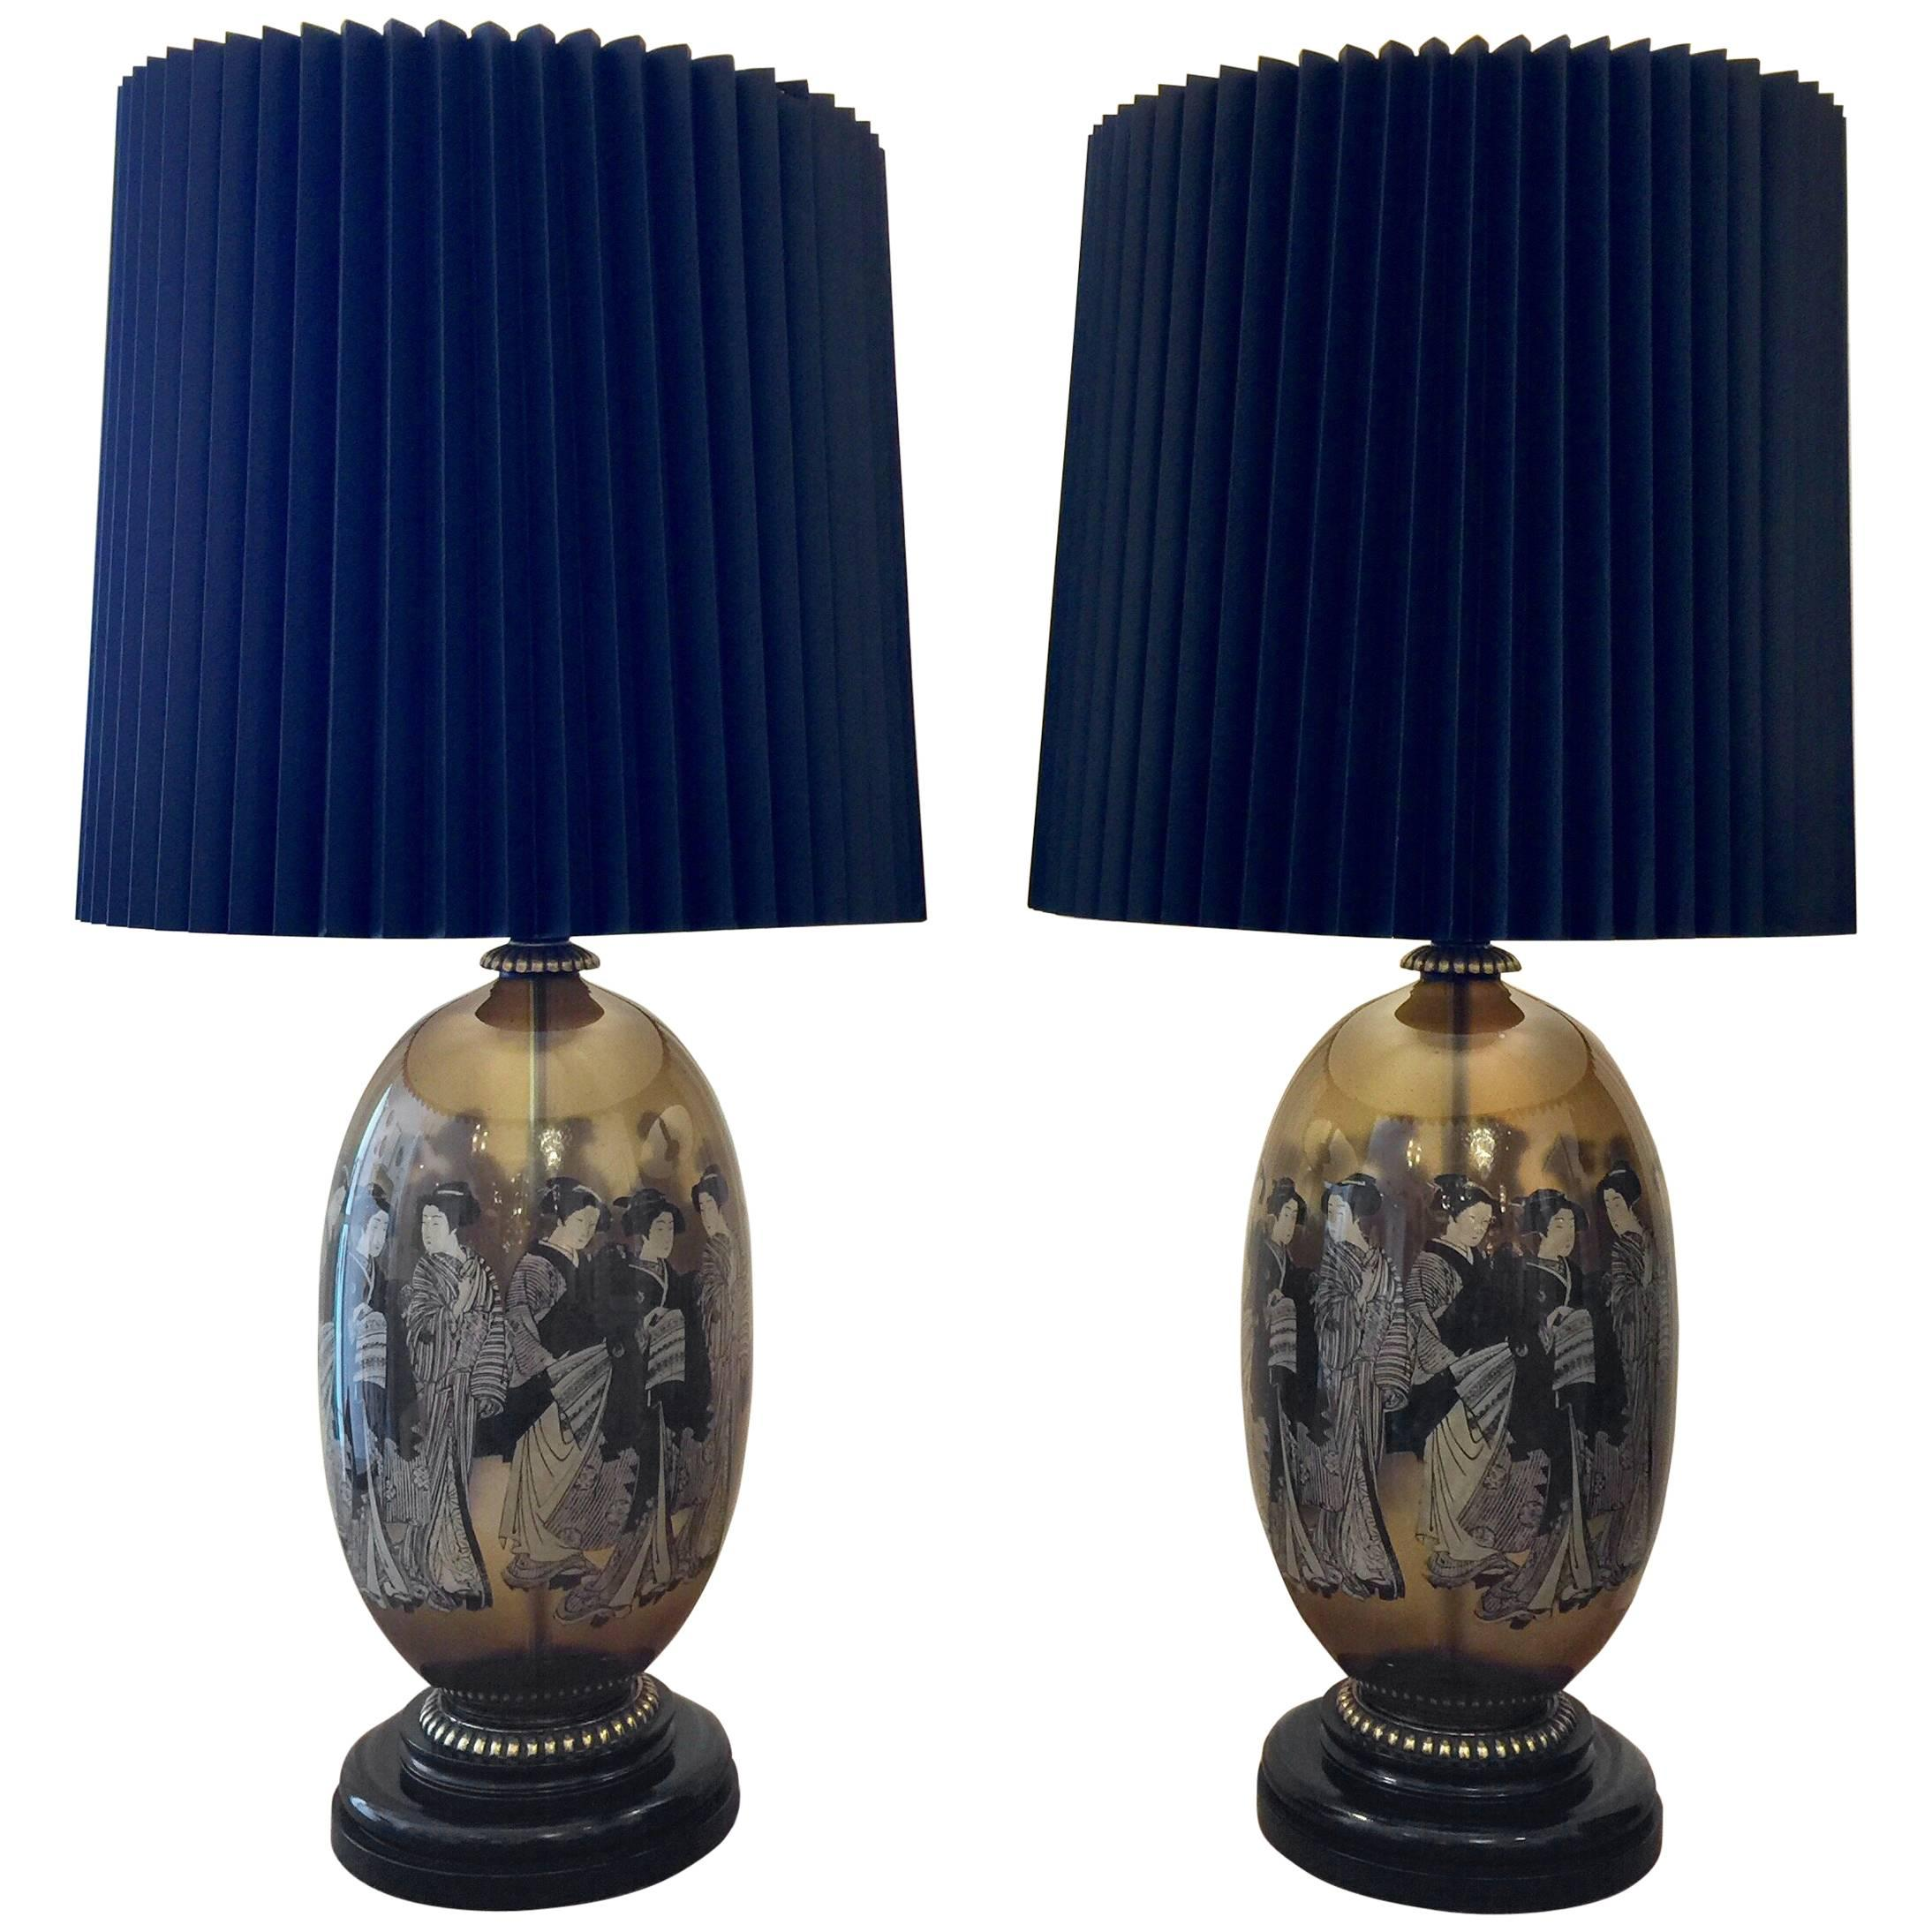 Decoupage Lamps , 17 For Sale on 1stdibs